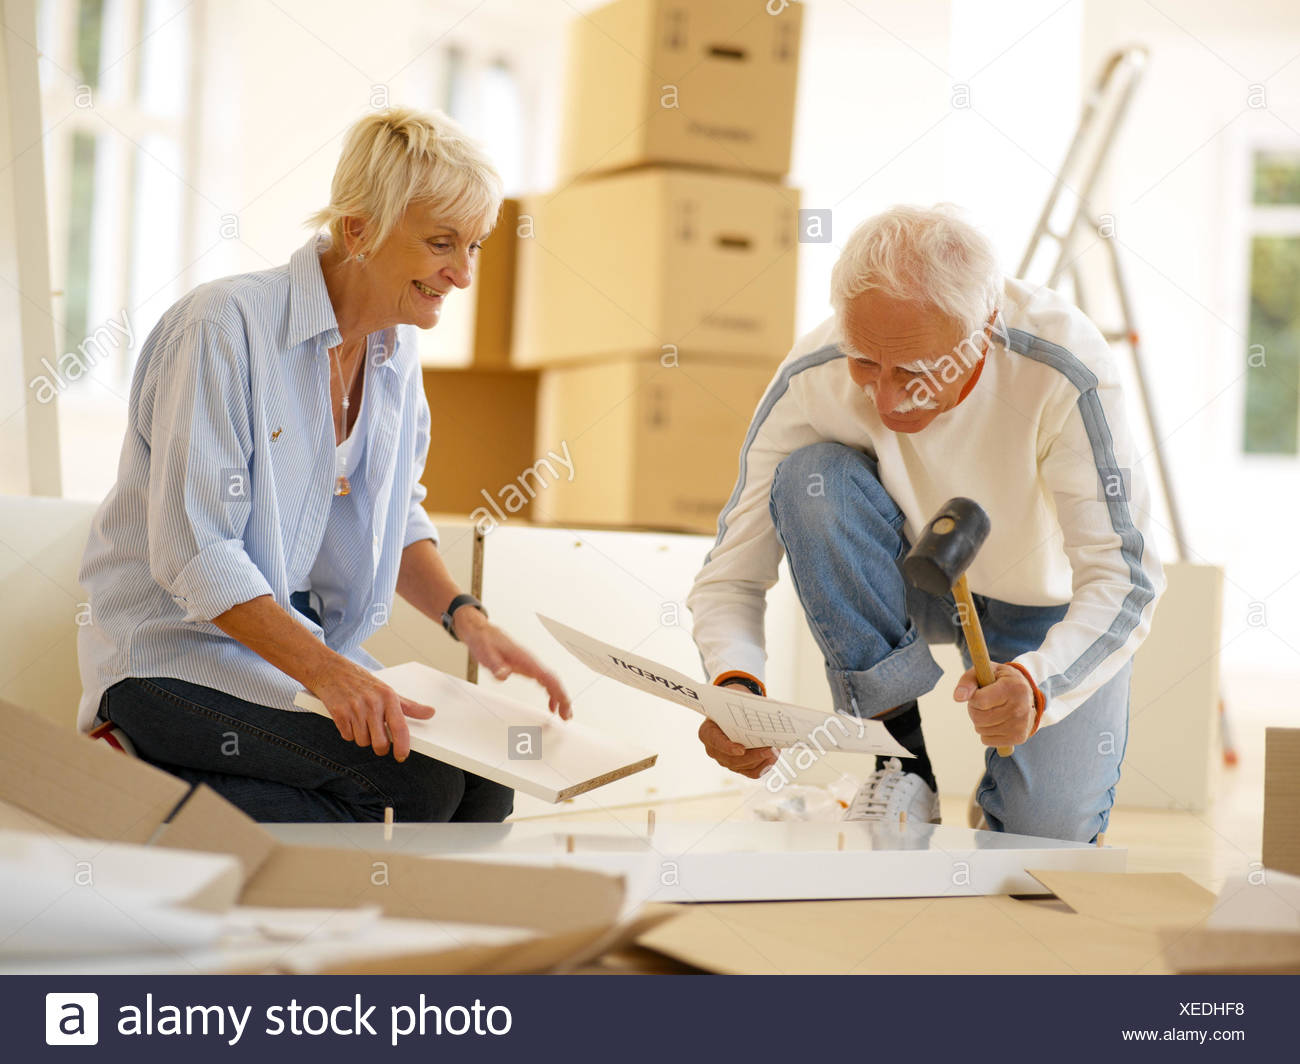 Do it yourselfers stock photos do it yourselfers stock images alamy procession senior couple st furniture assemble concentration 60 70 solutioingenieria Gallery